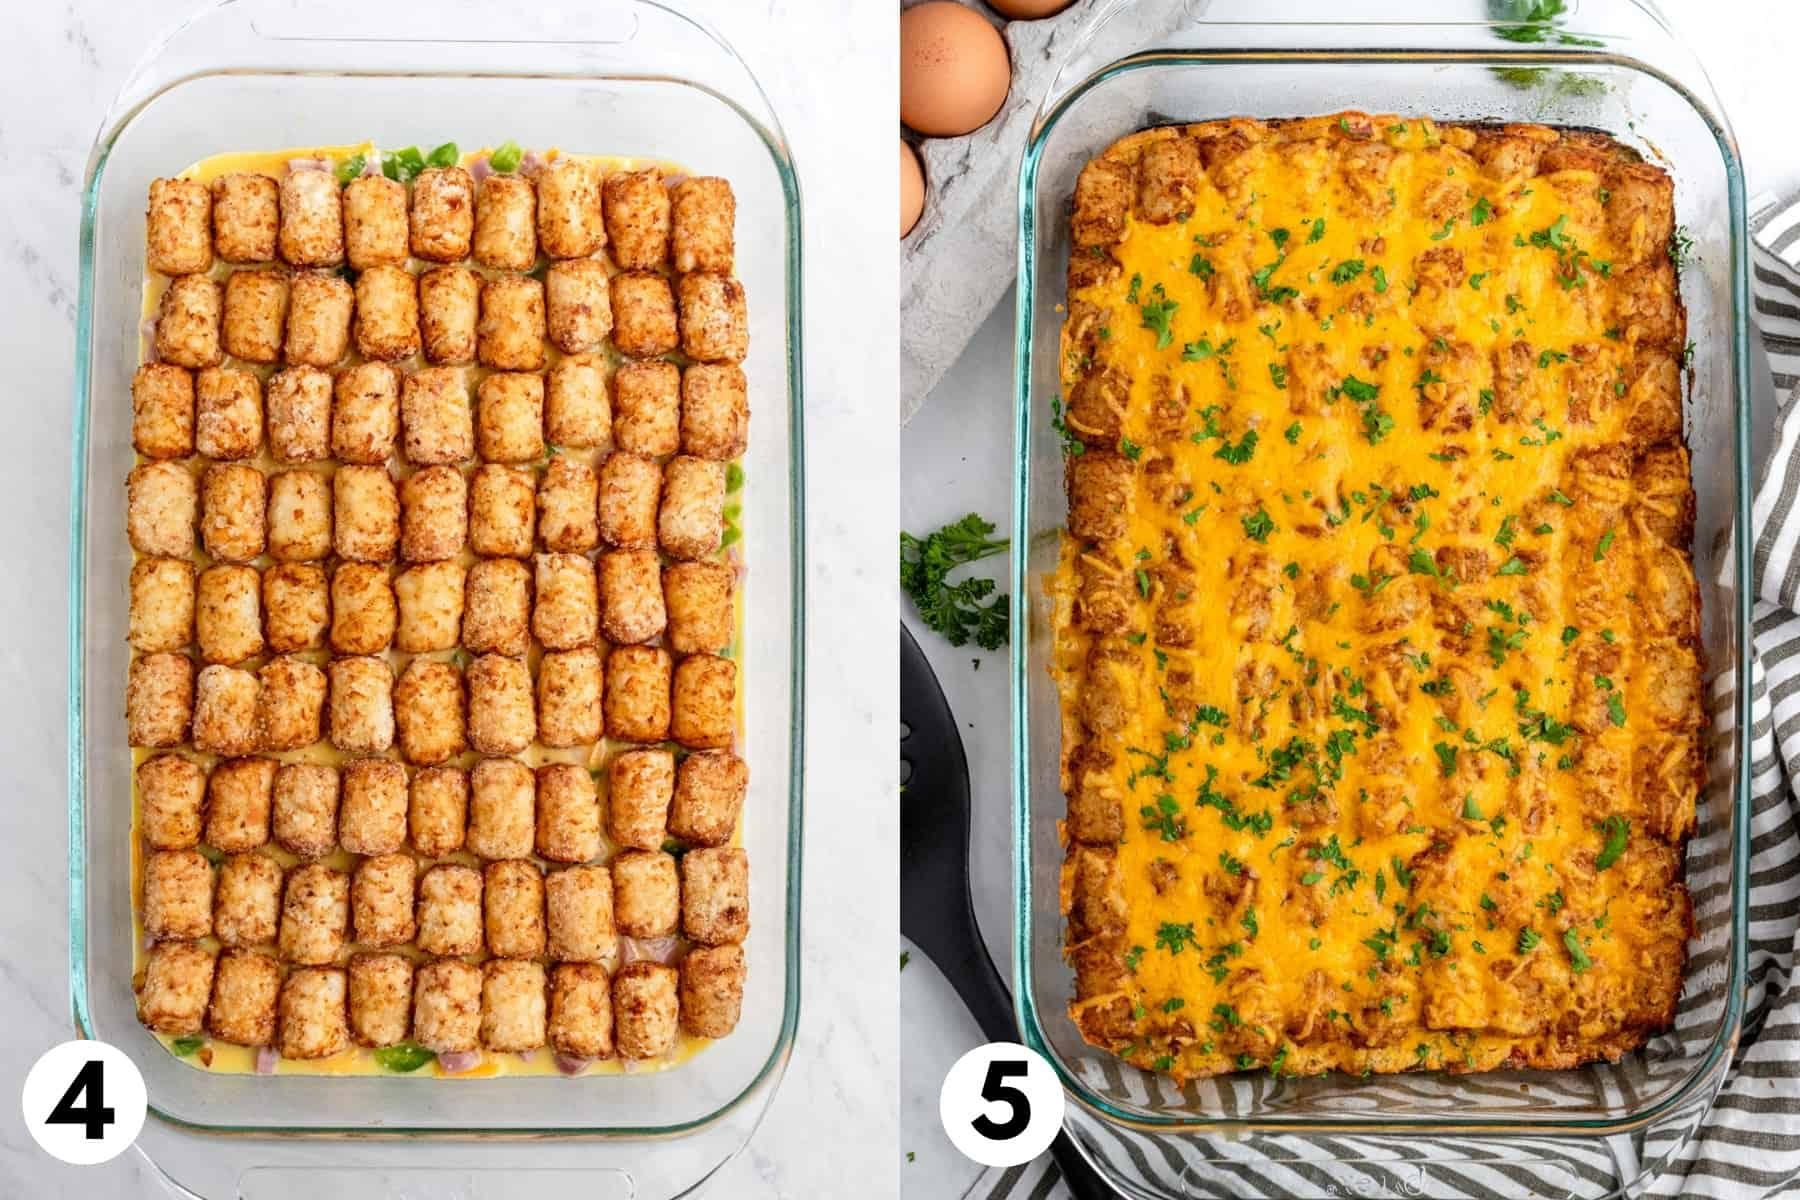 Tator tots lined up in 9x13 inch pan and then baked with cheese on top.